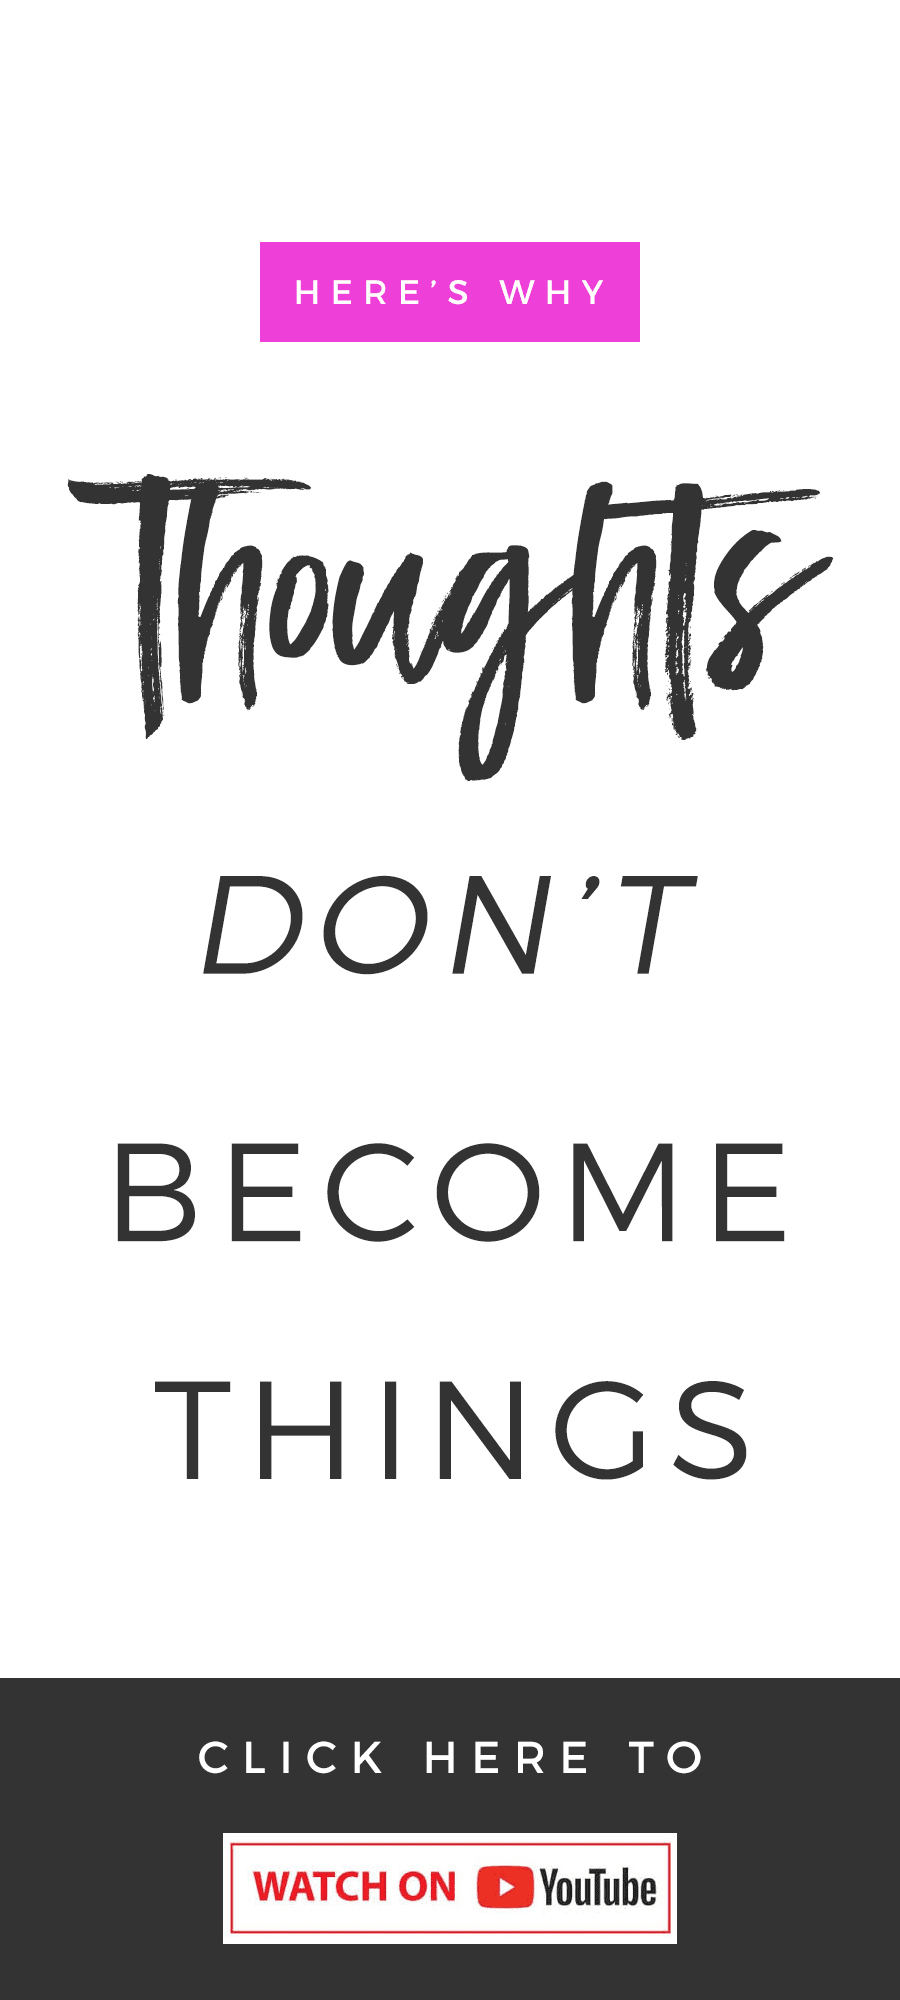 Thoughts Don't Become Things